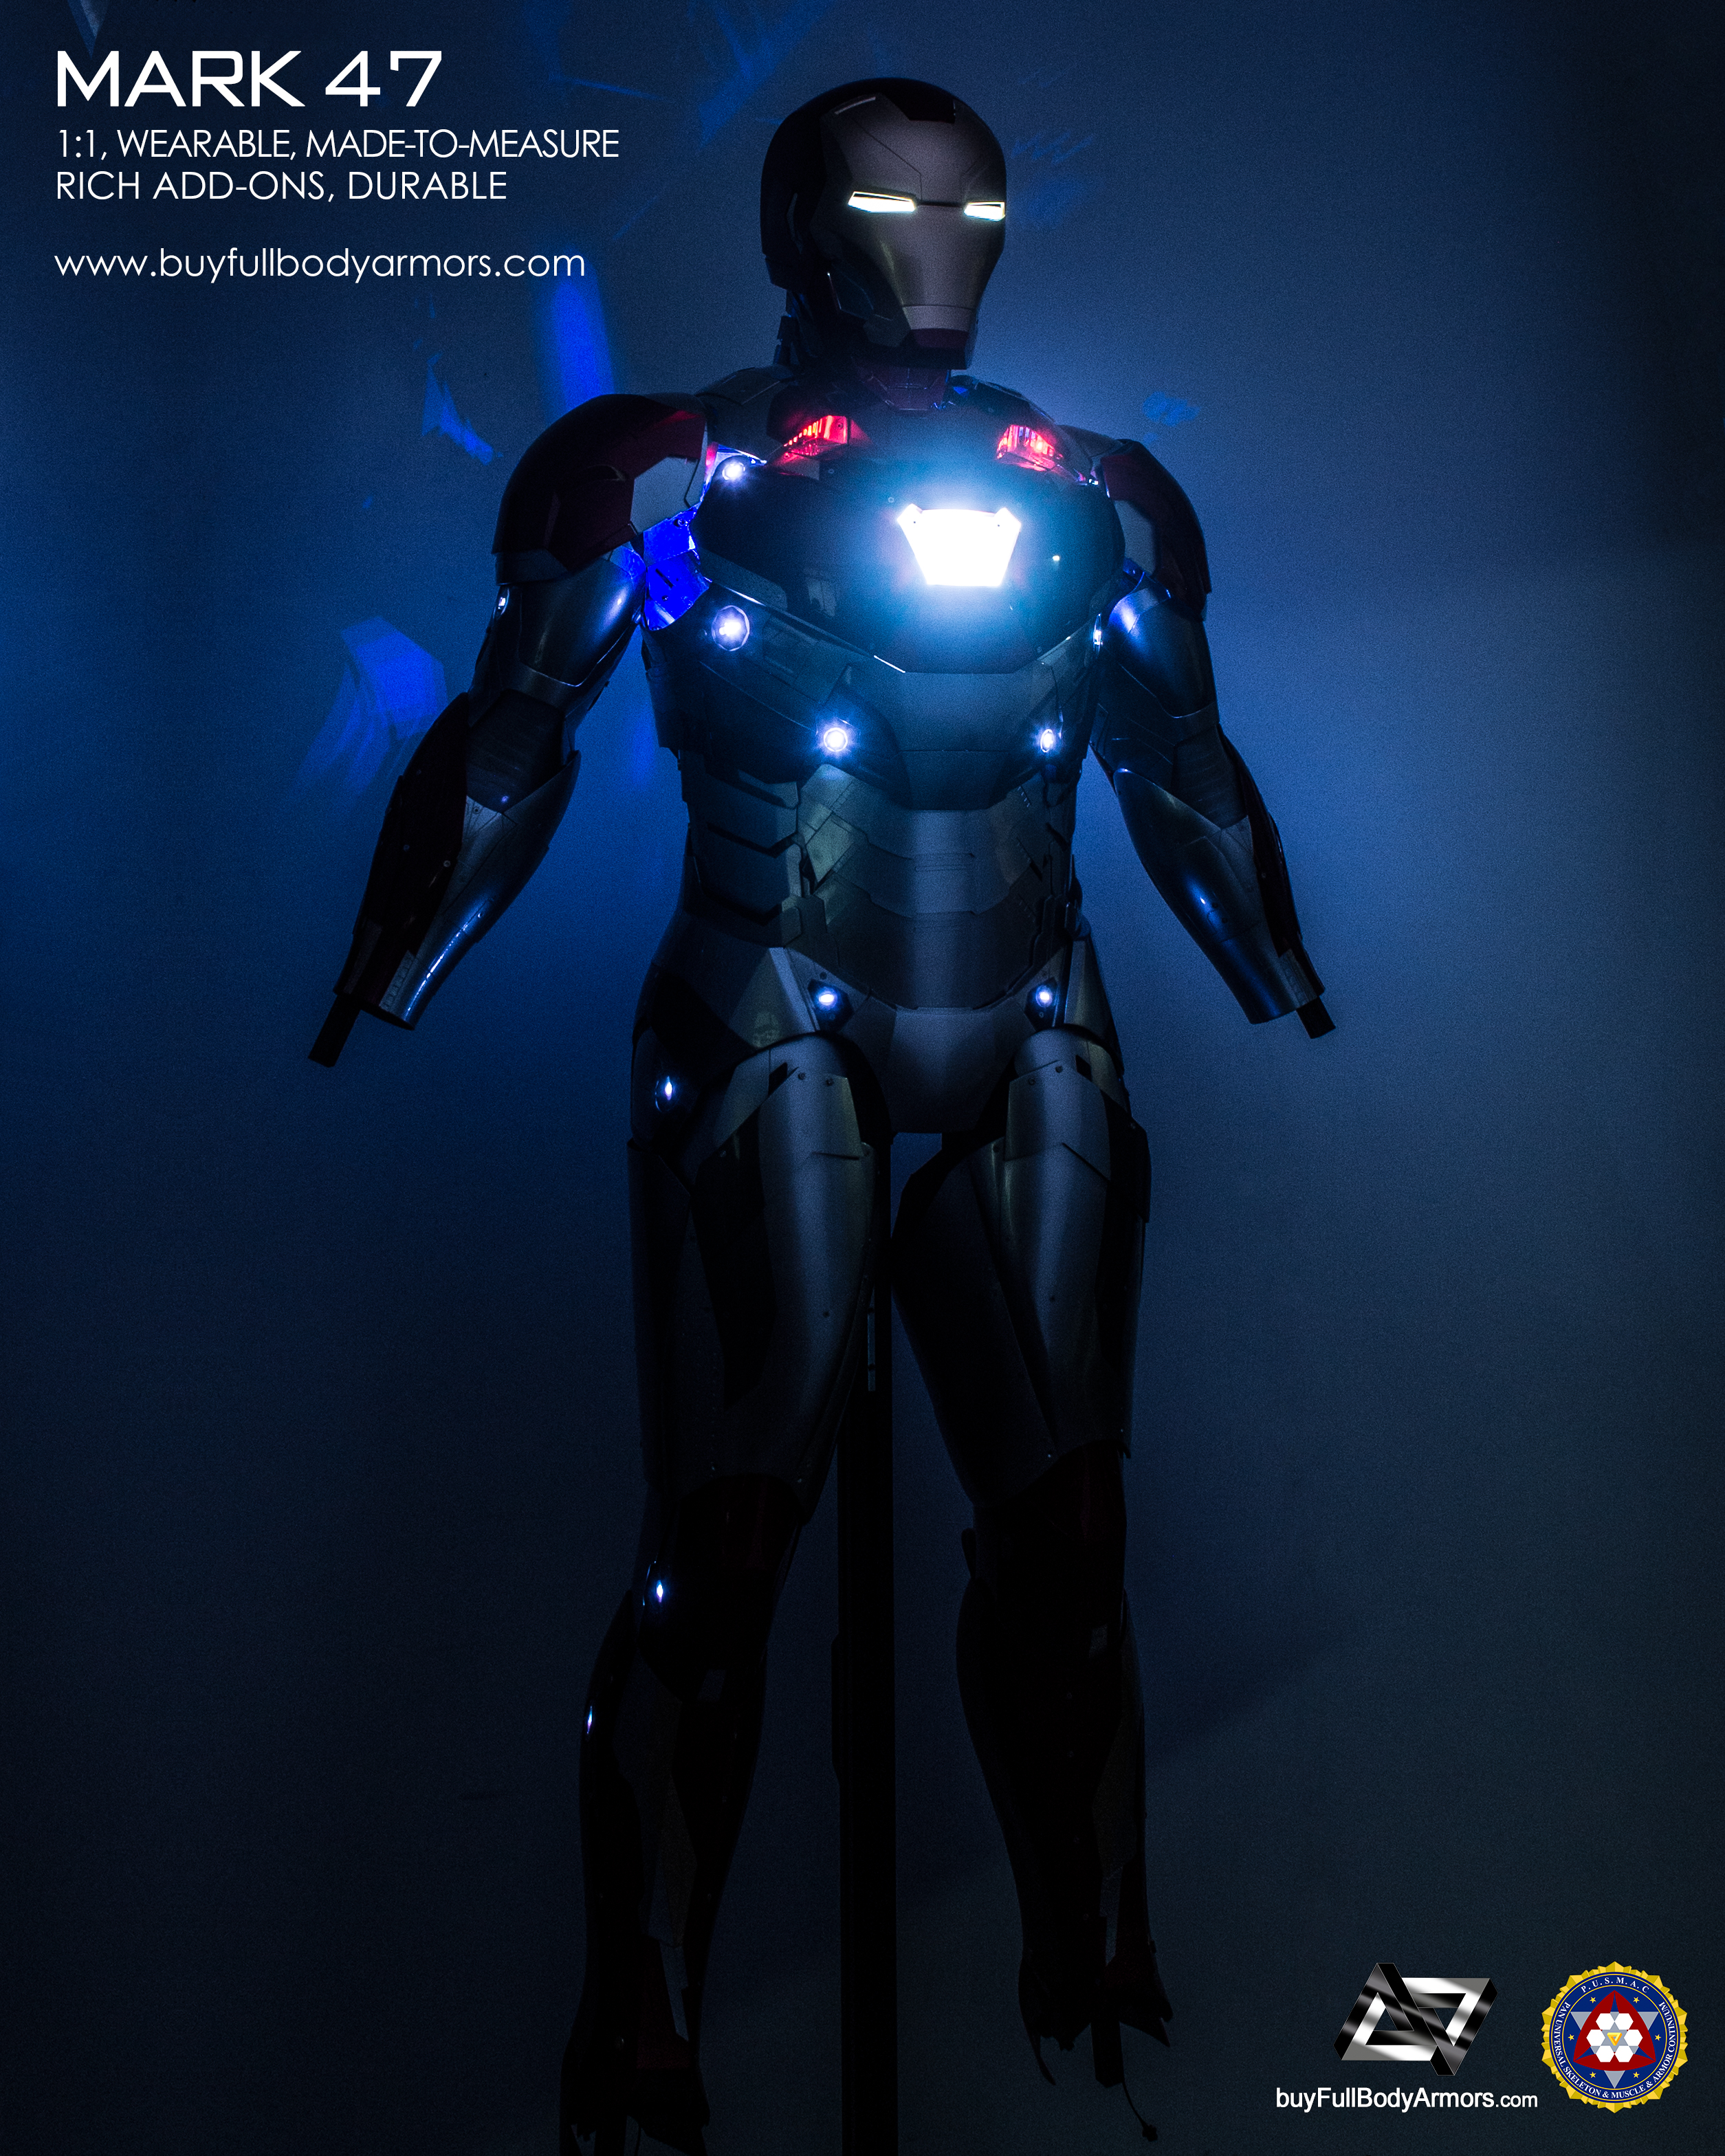 wearable_iron_man_mark_47_armor_costume_with_no_hands_shoes_dark